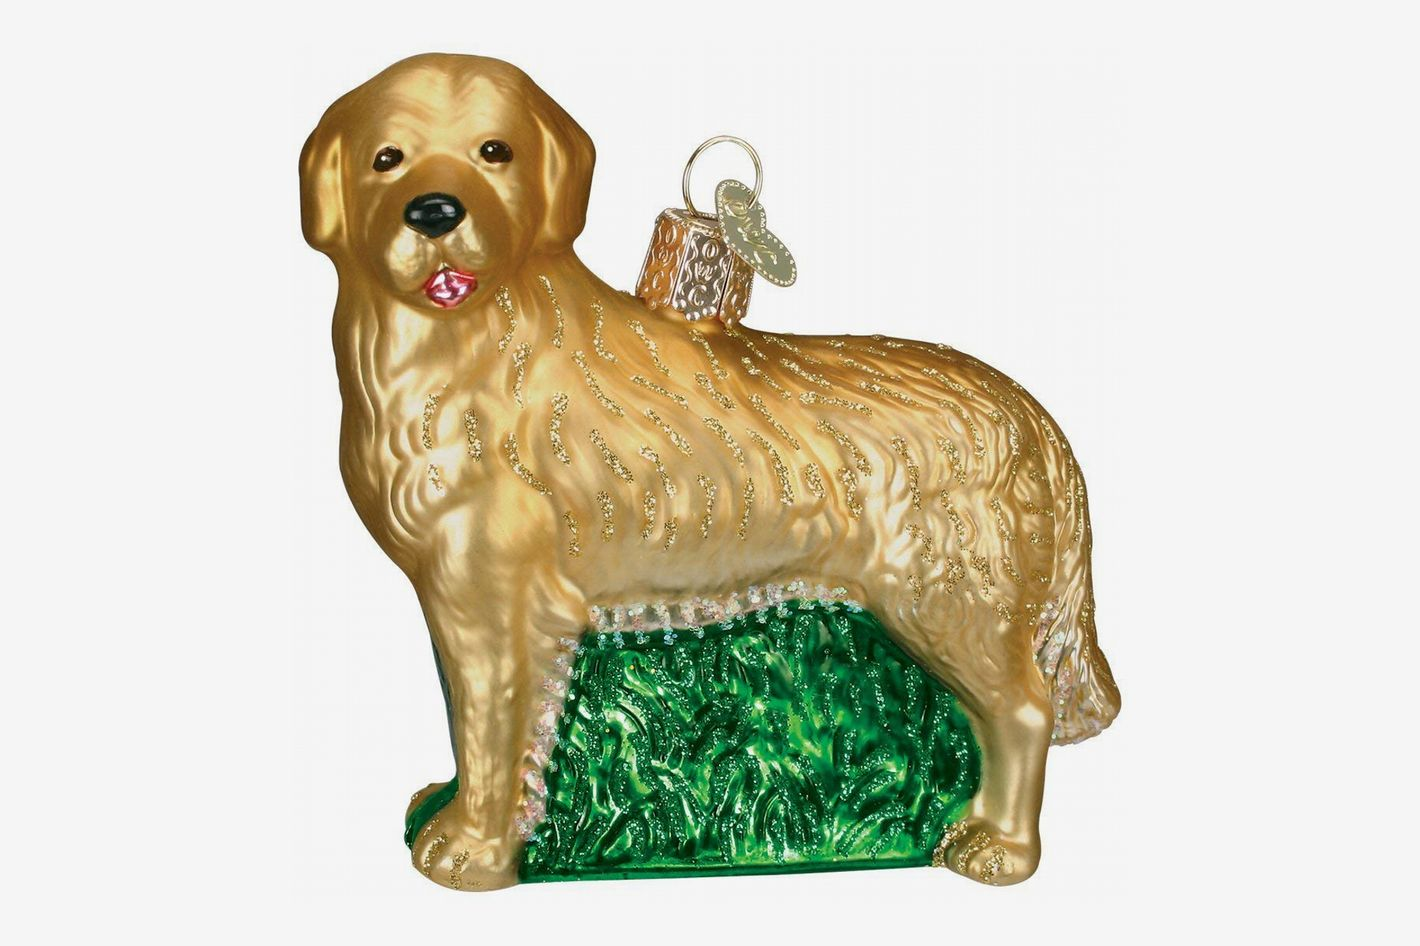 Old World Christmas Ornaments: Golden Retriever Glass Blown Ornament